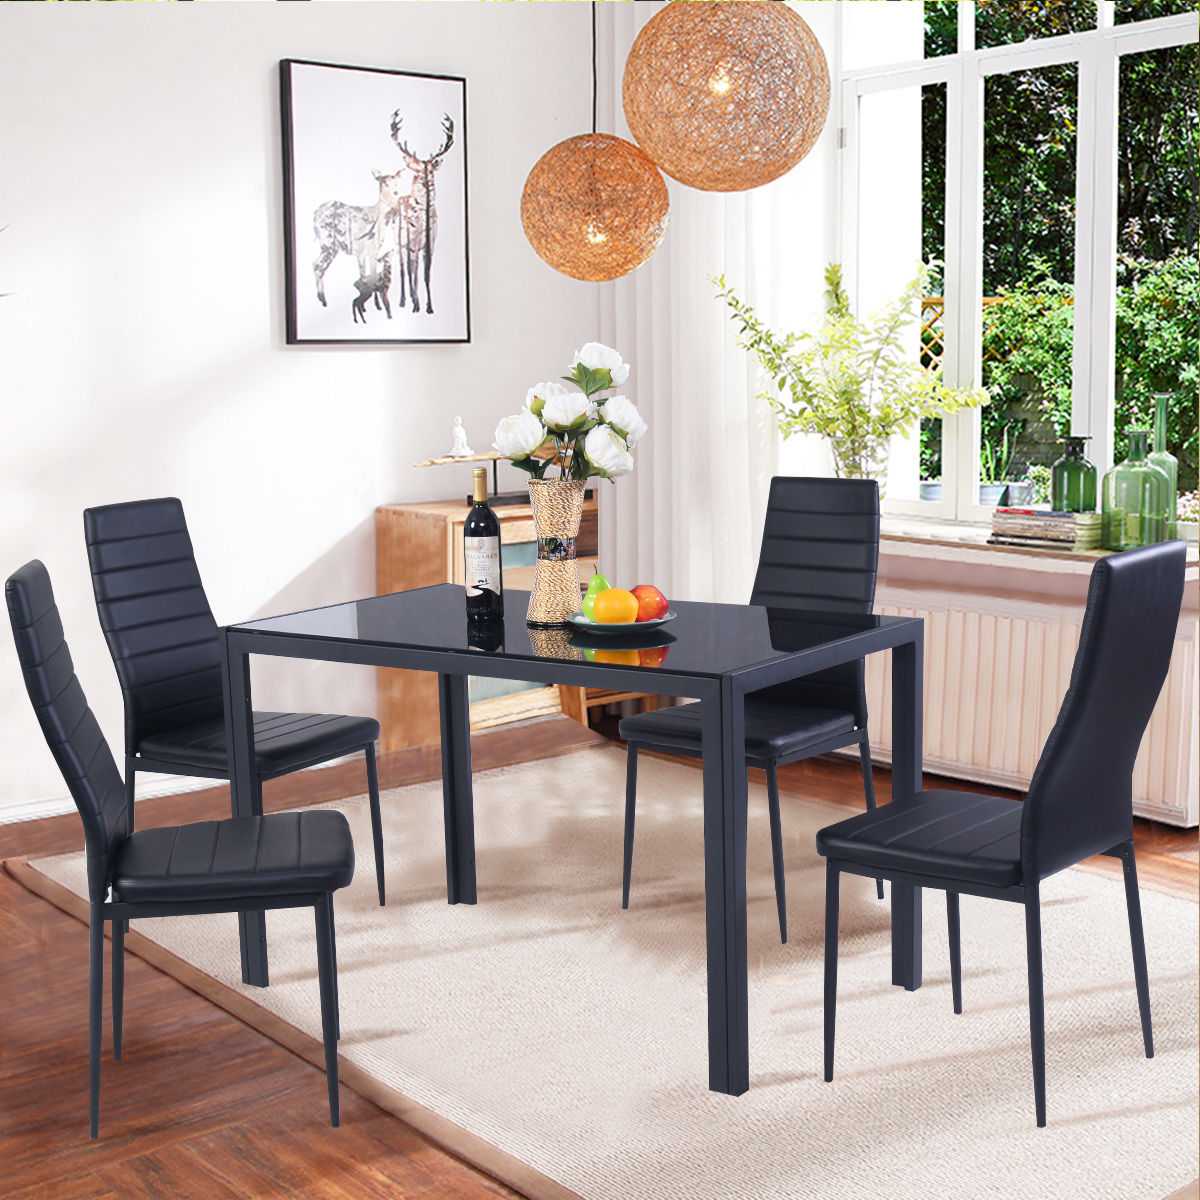 Costway 5 Piece Kitchen Dining Set Glass Metal Table and 4 Chairs...